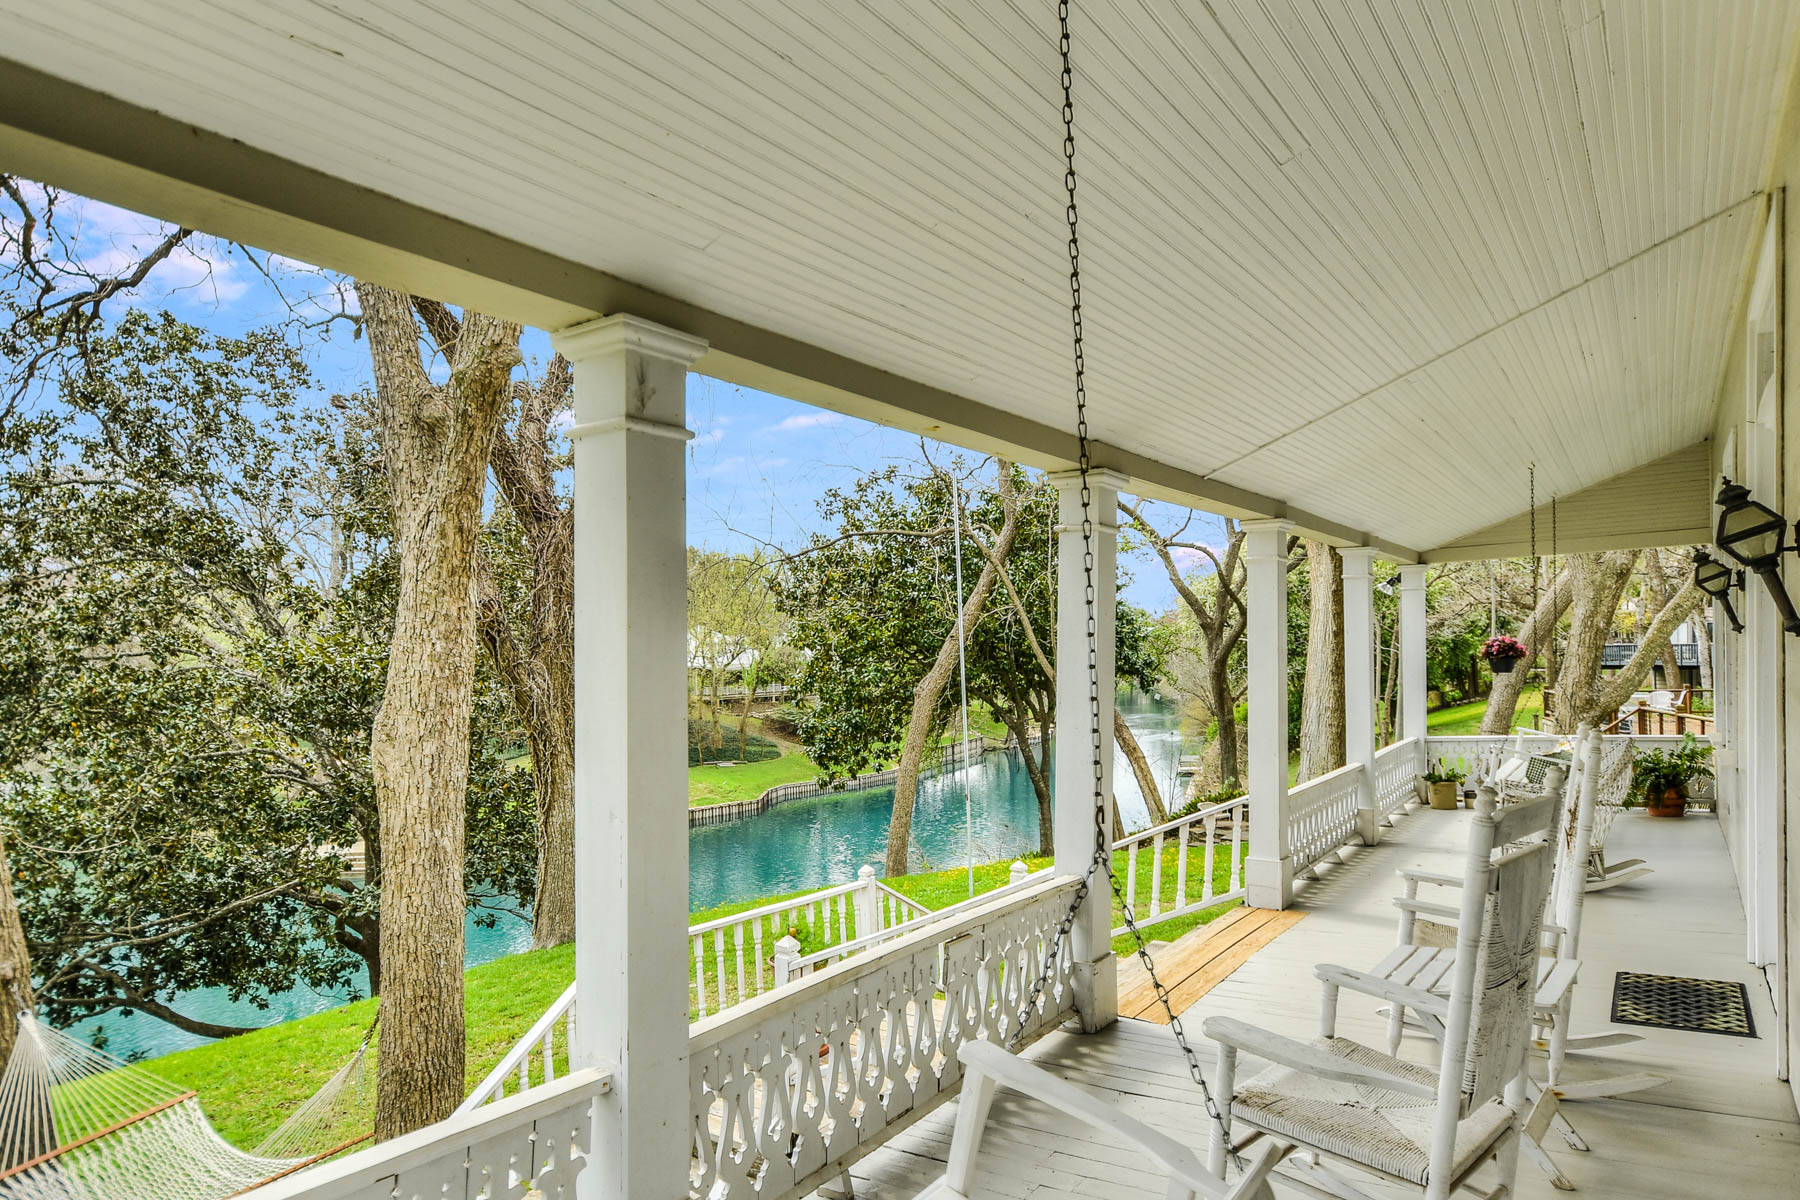 Single Family Home for Sale at Exclusive Address on Comal and Guadalupe Rivers 246 Lincoln New Braunfels, Texas 78130 United States